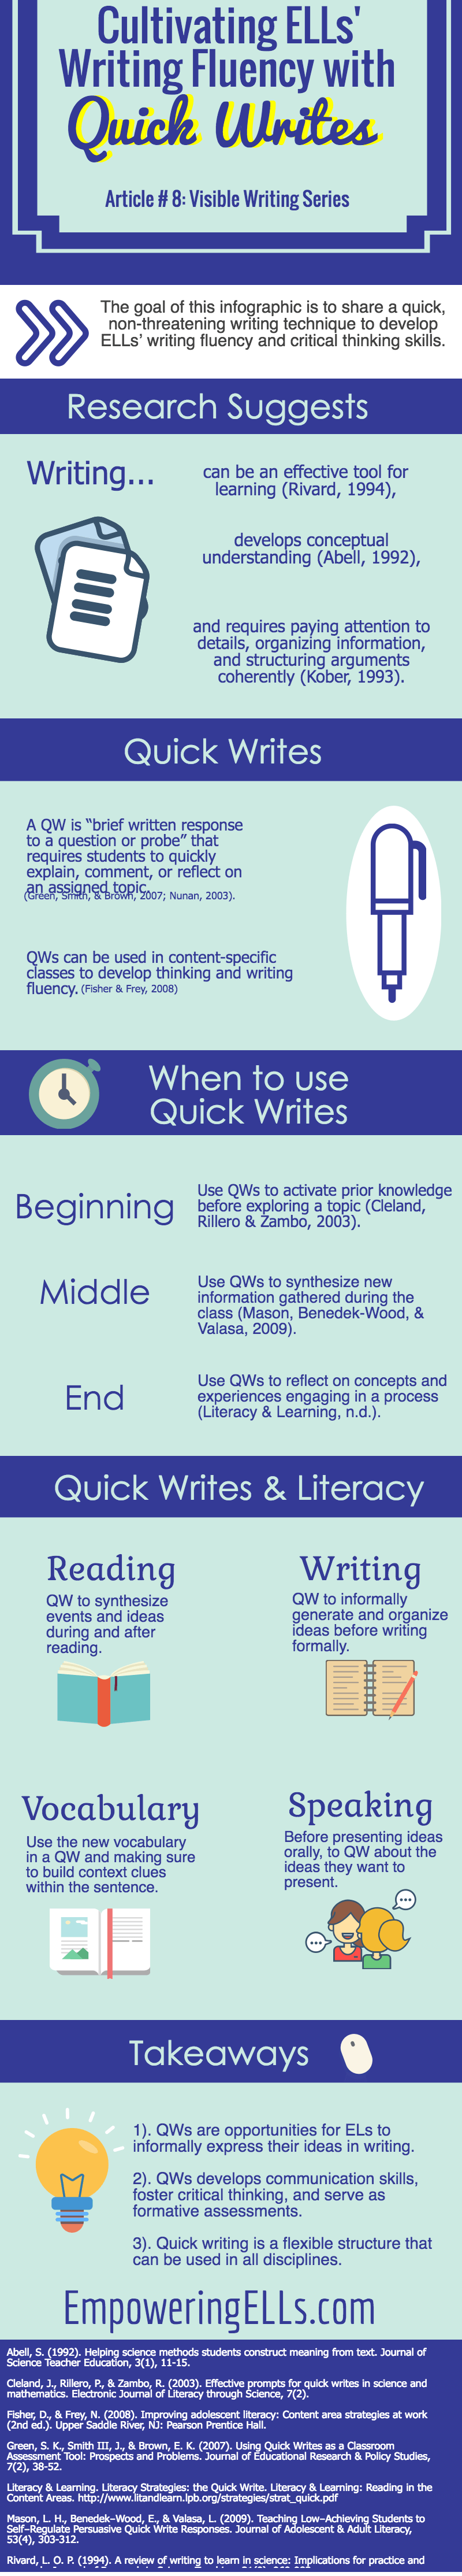 A8 Using Quick Writes with ELLs